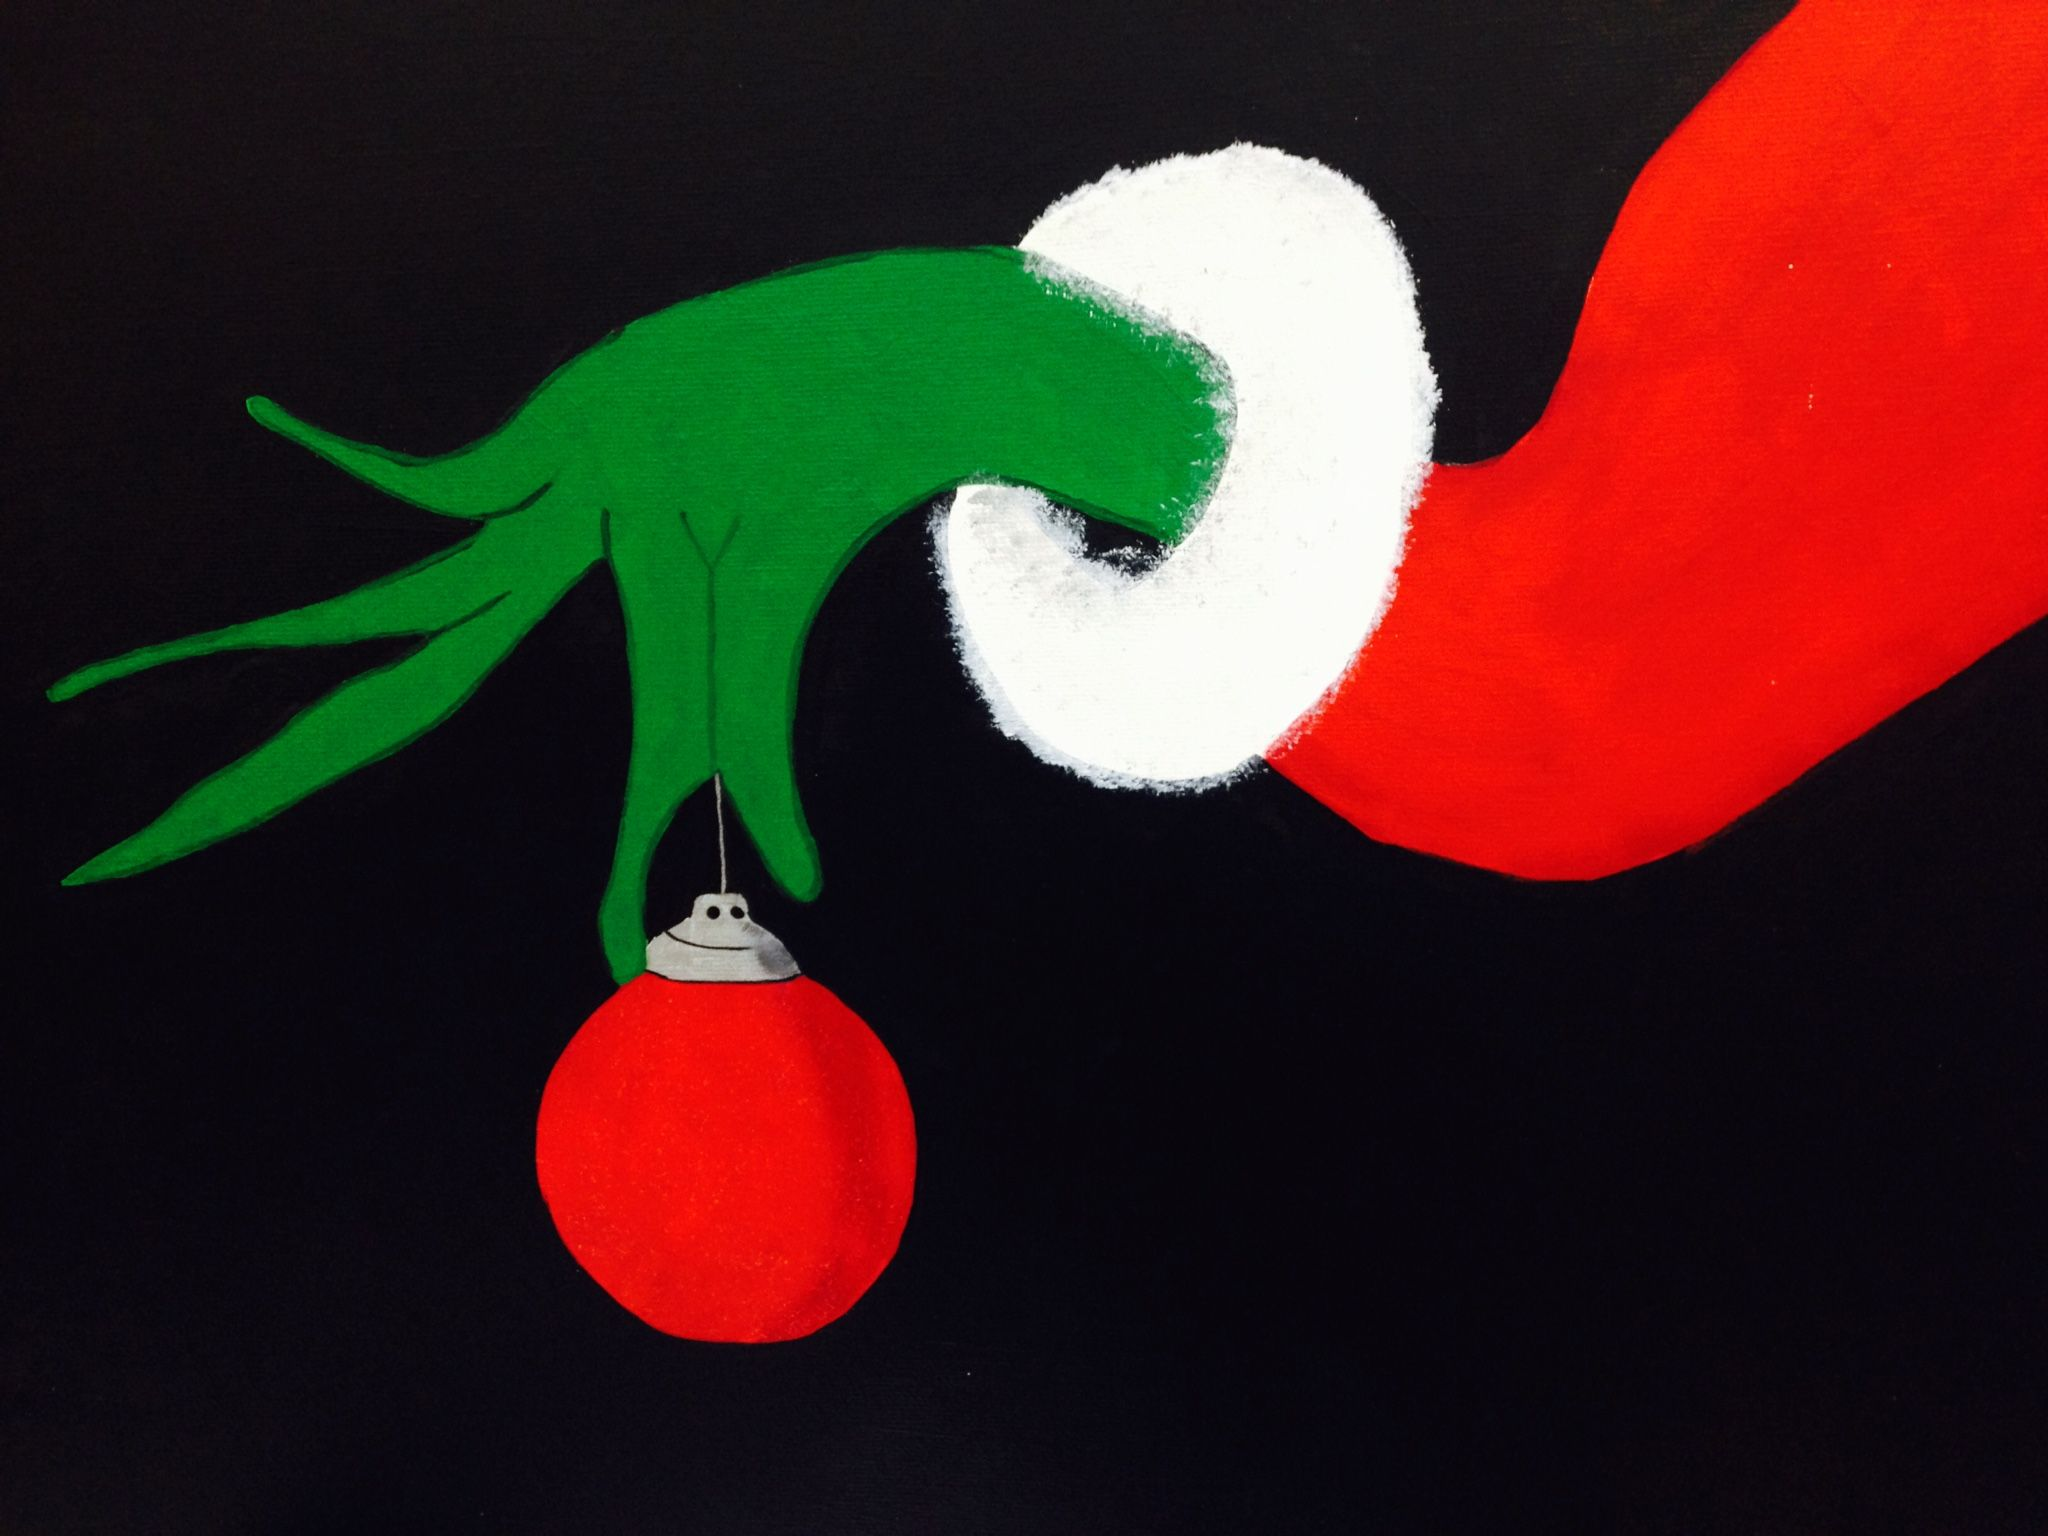 grinch hand holding ornament clipart.